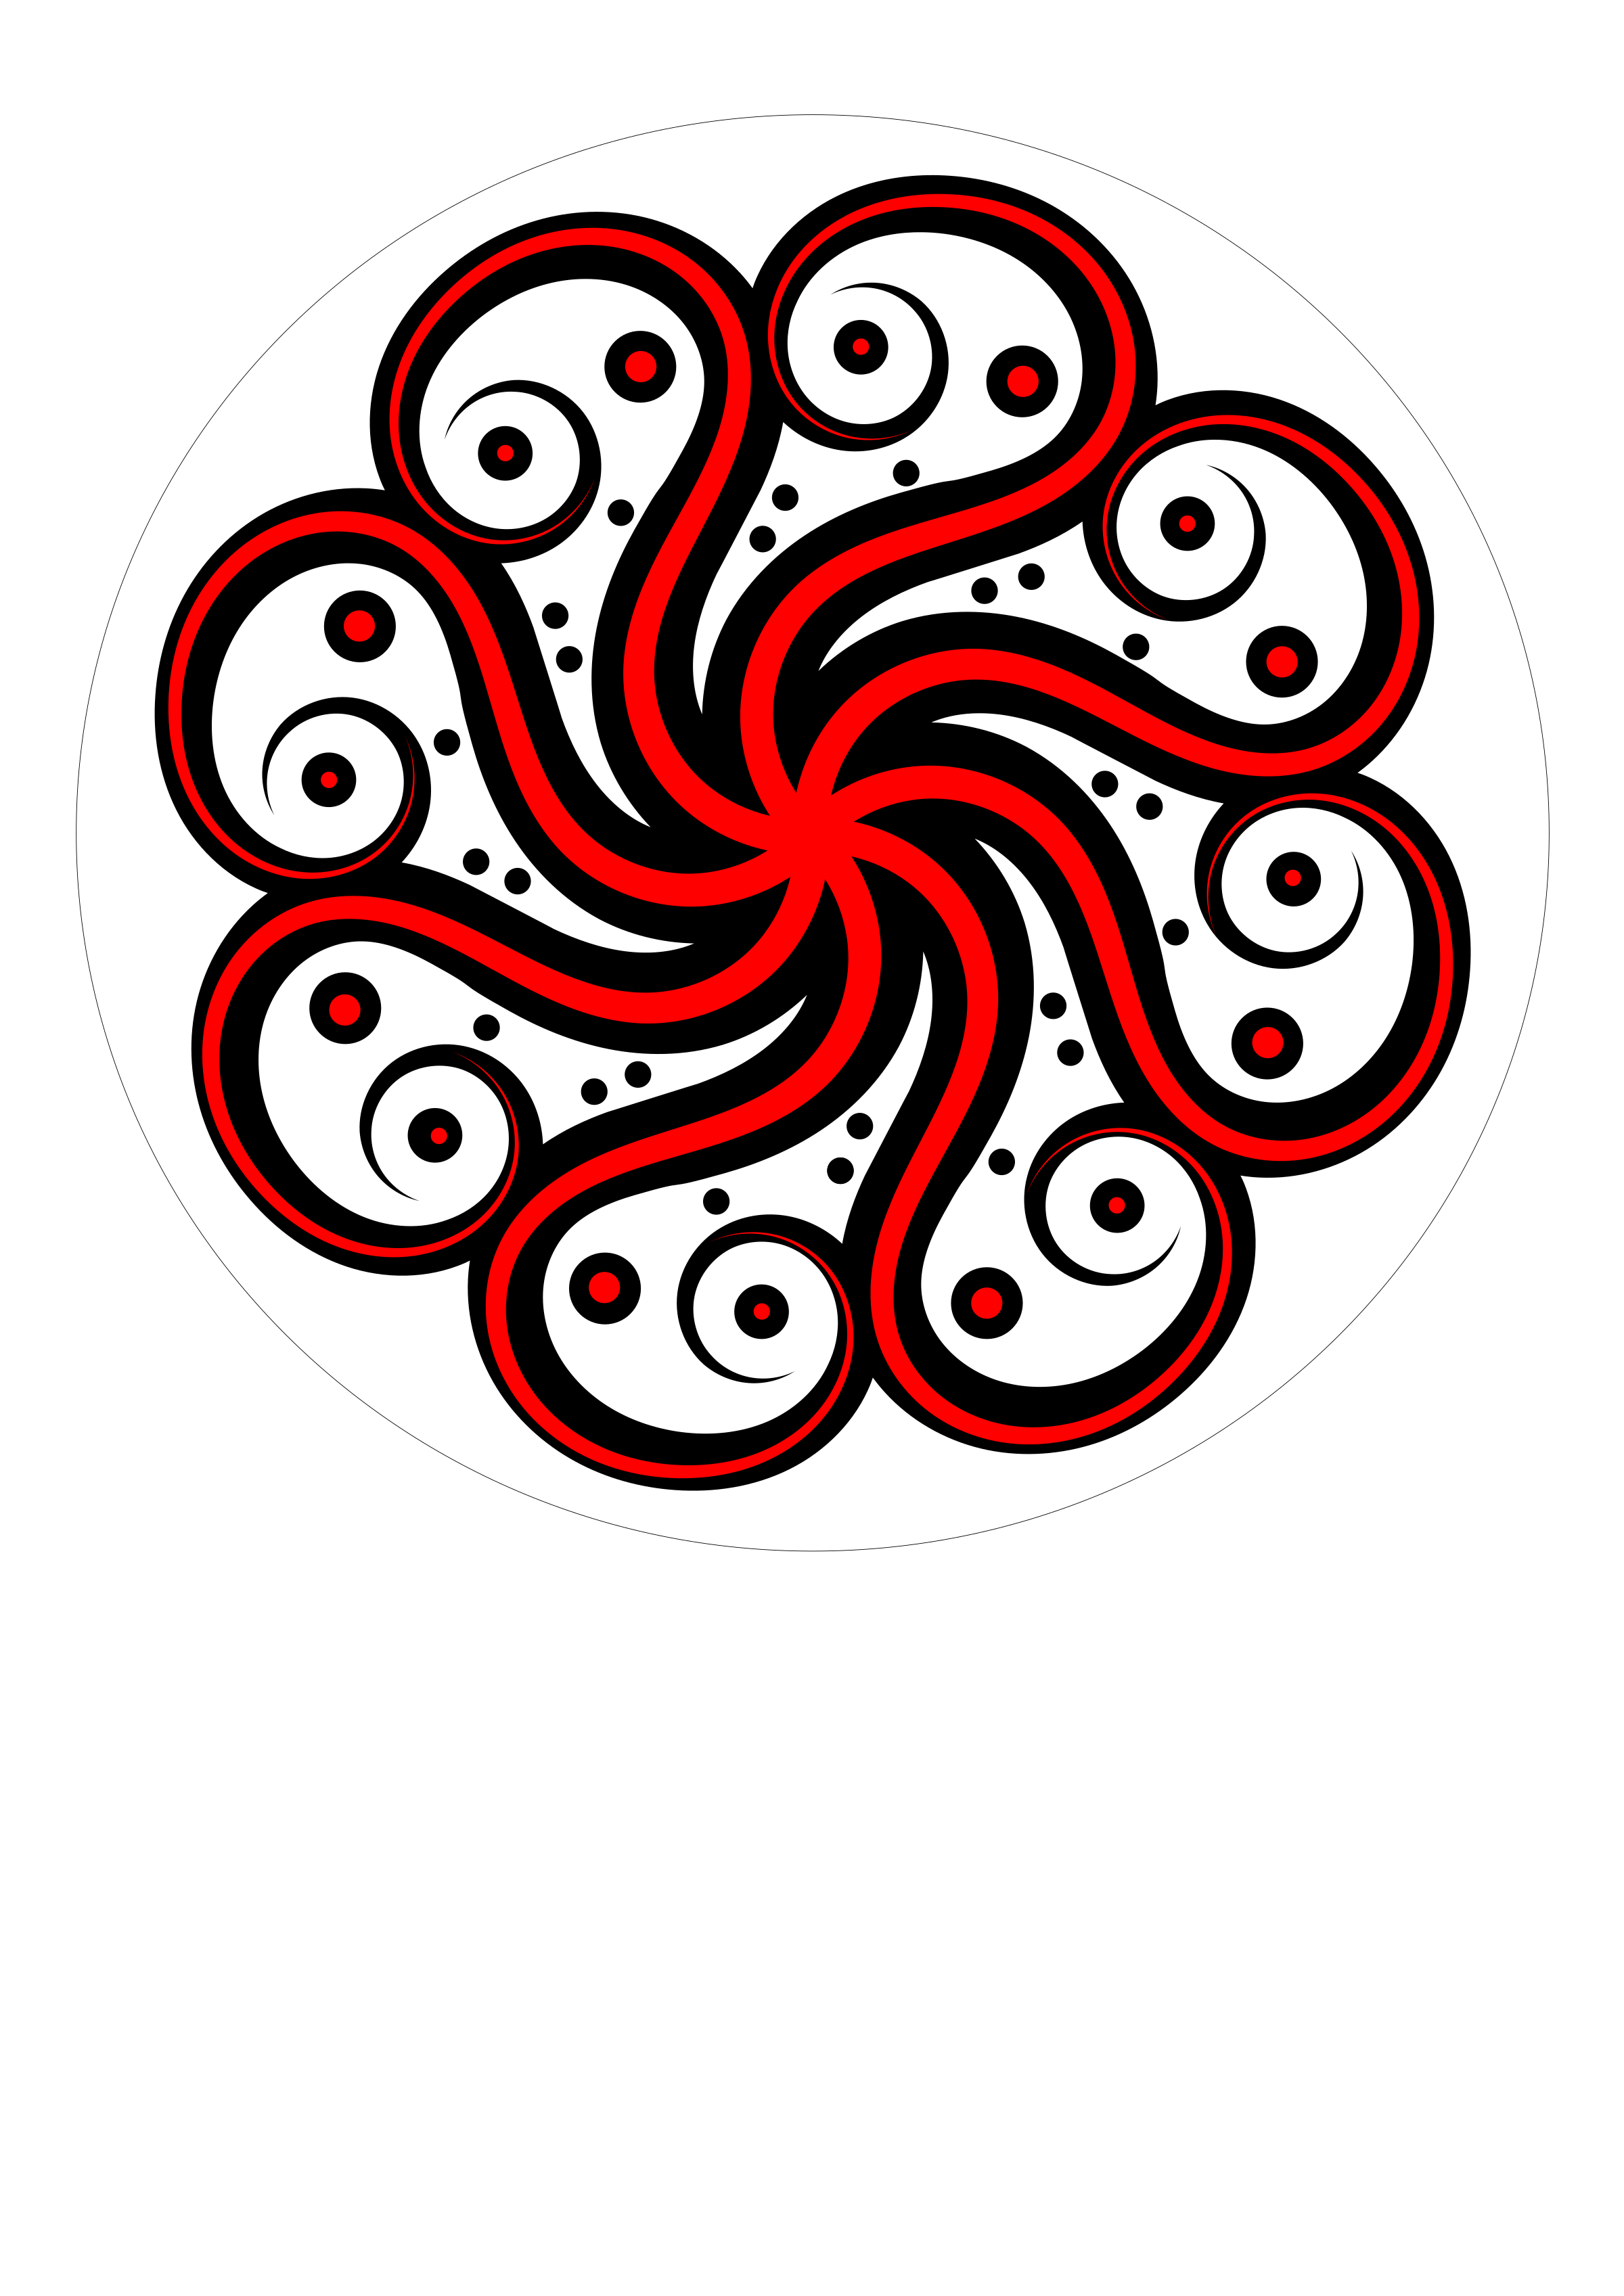 Clipart octopus clipart red. Black abstract big image